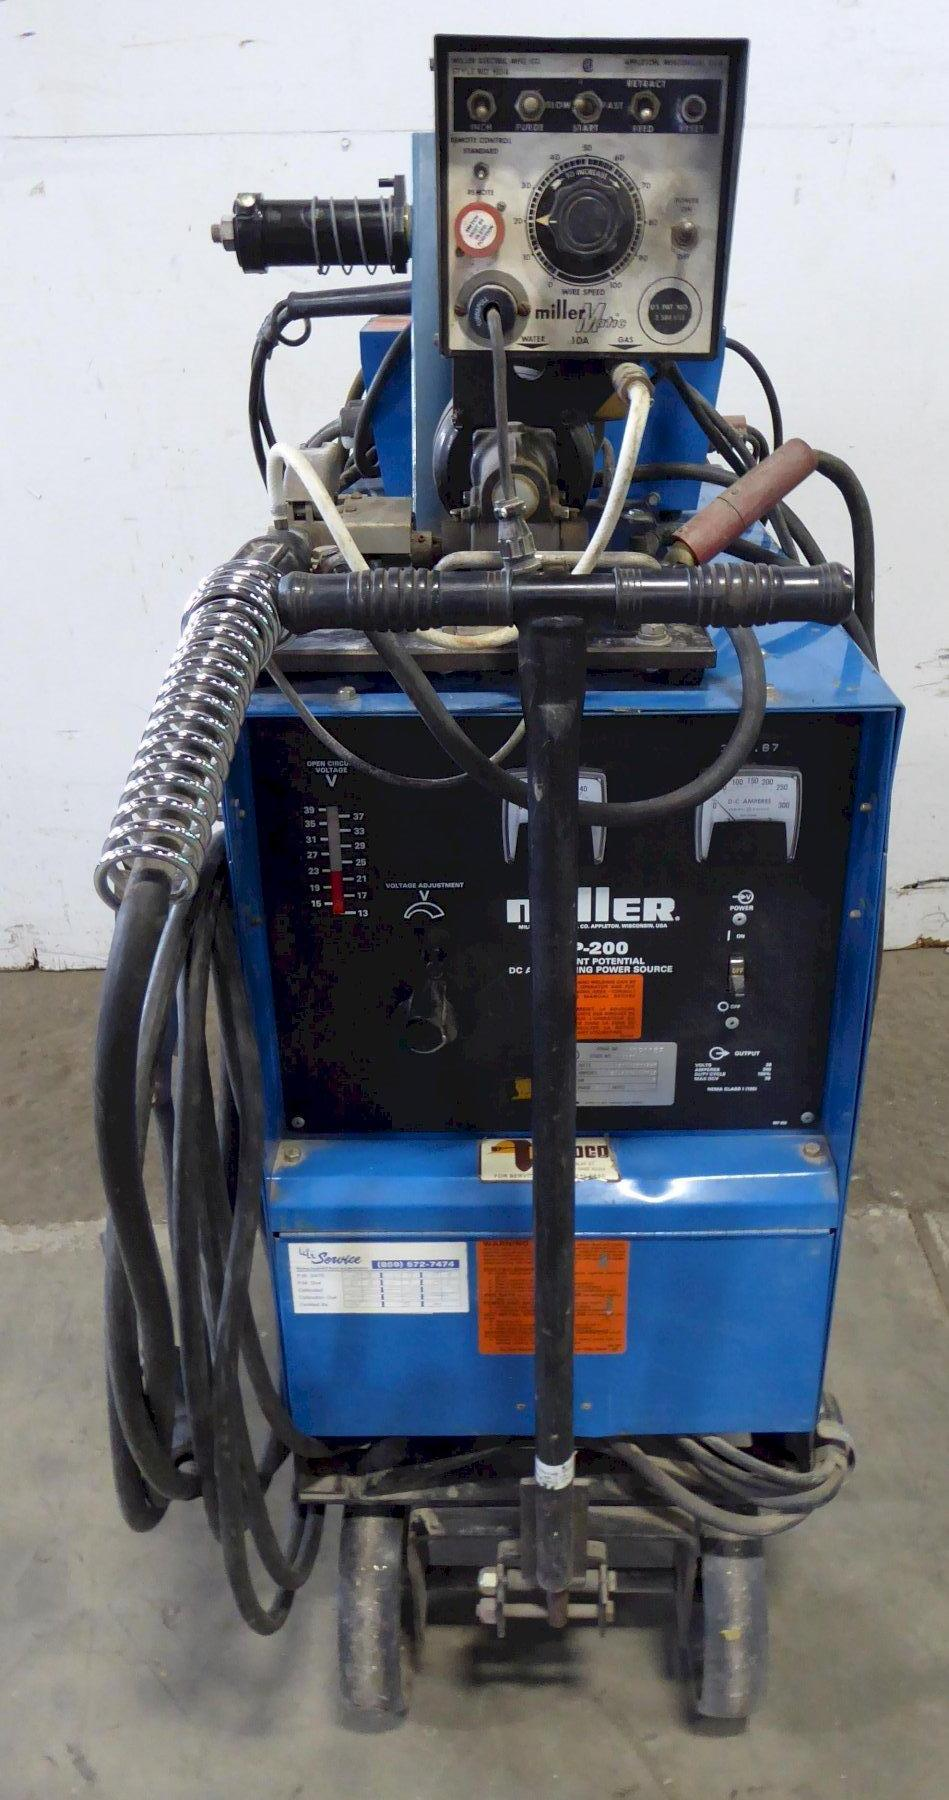 Miller CP-200 Constant Potential DC Arc Welding Source